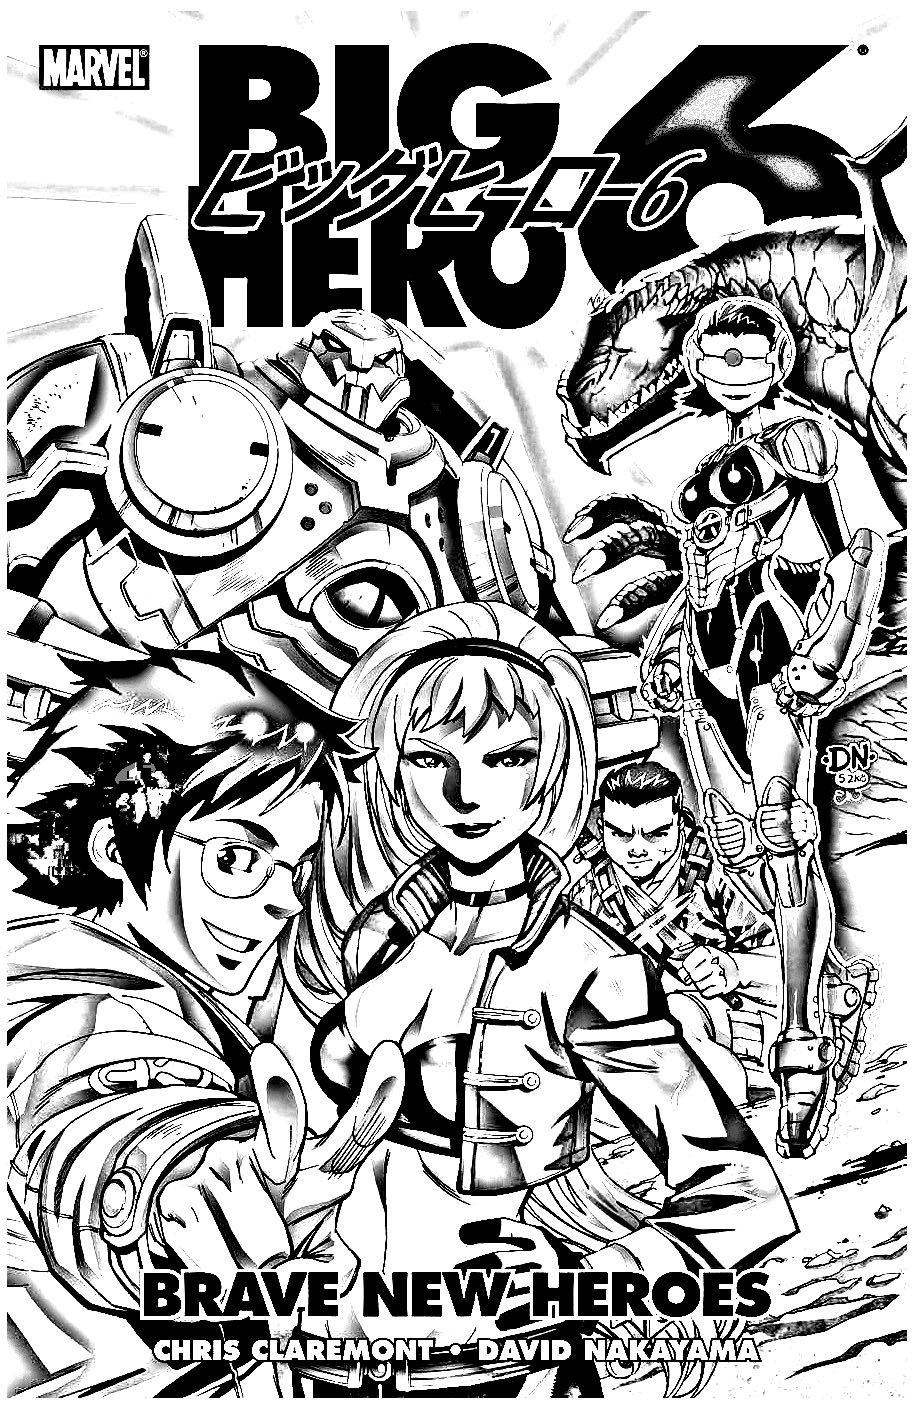 'Brave new heroes'